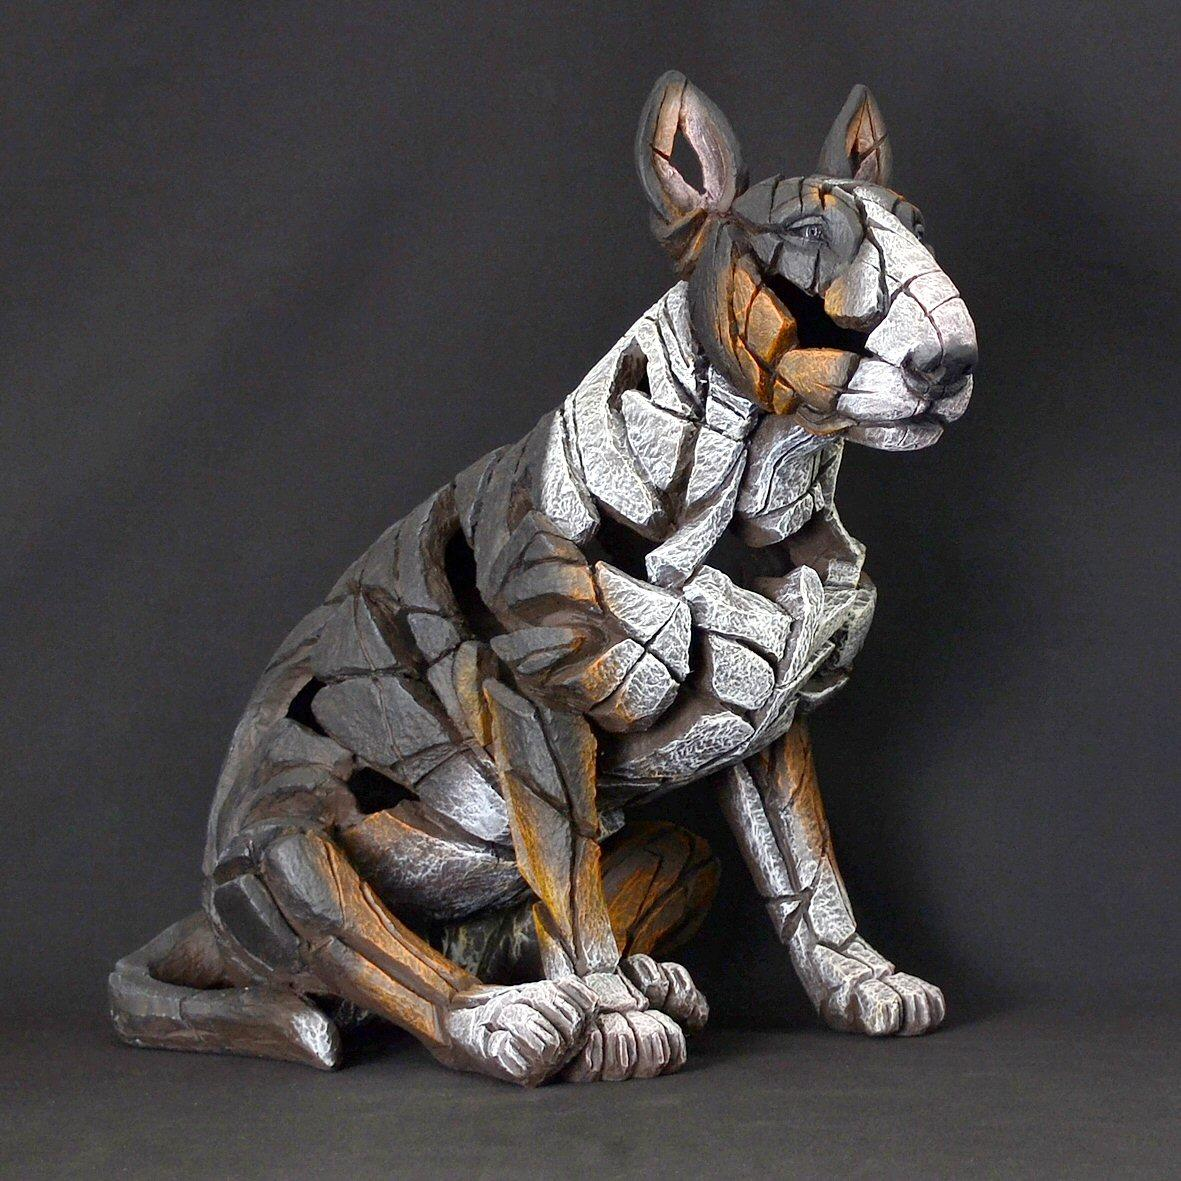 Bull Terrier Sitting - Tricolour ED23T EDGE by Matt Buckley